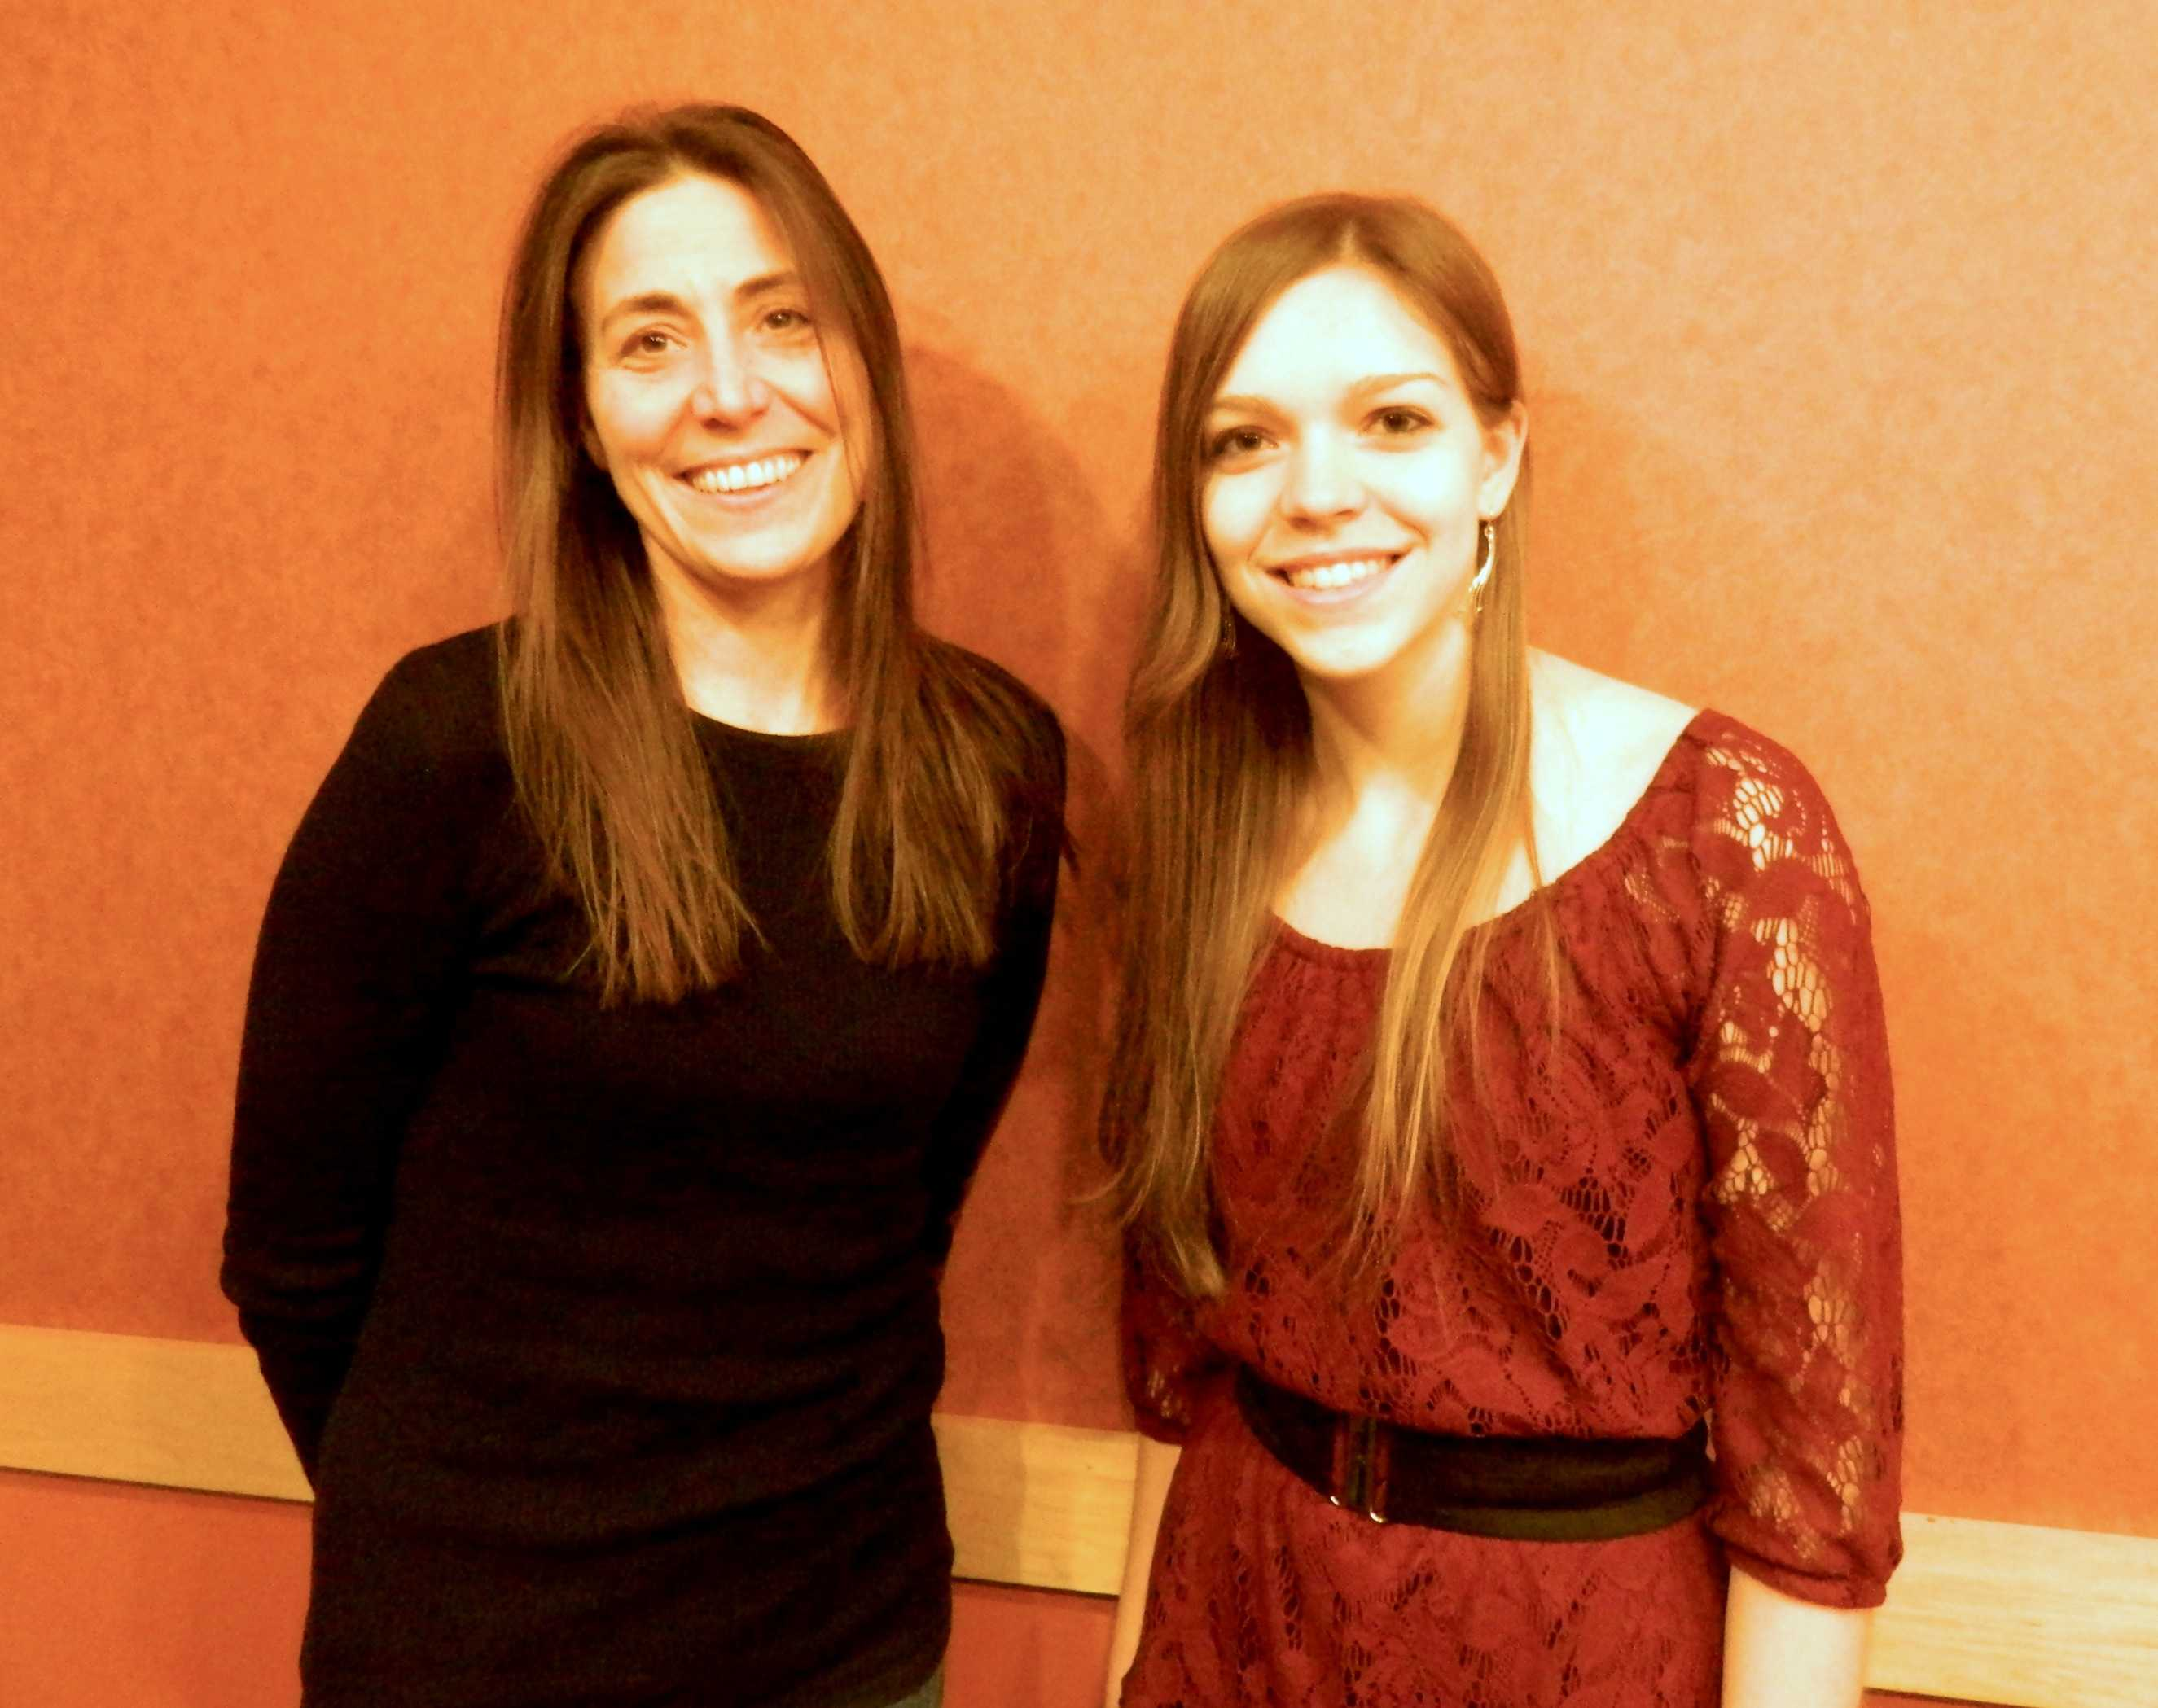 The author and the author: Rebecca Stead with her interviewer from the Raider Times at Lesley University in Cambridge, Mass., on Jan. 8, 2014.